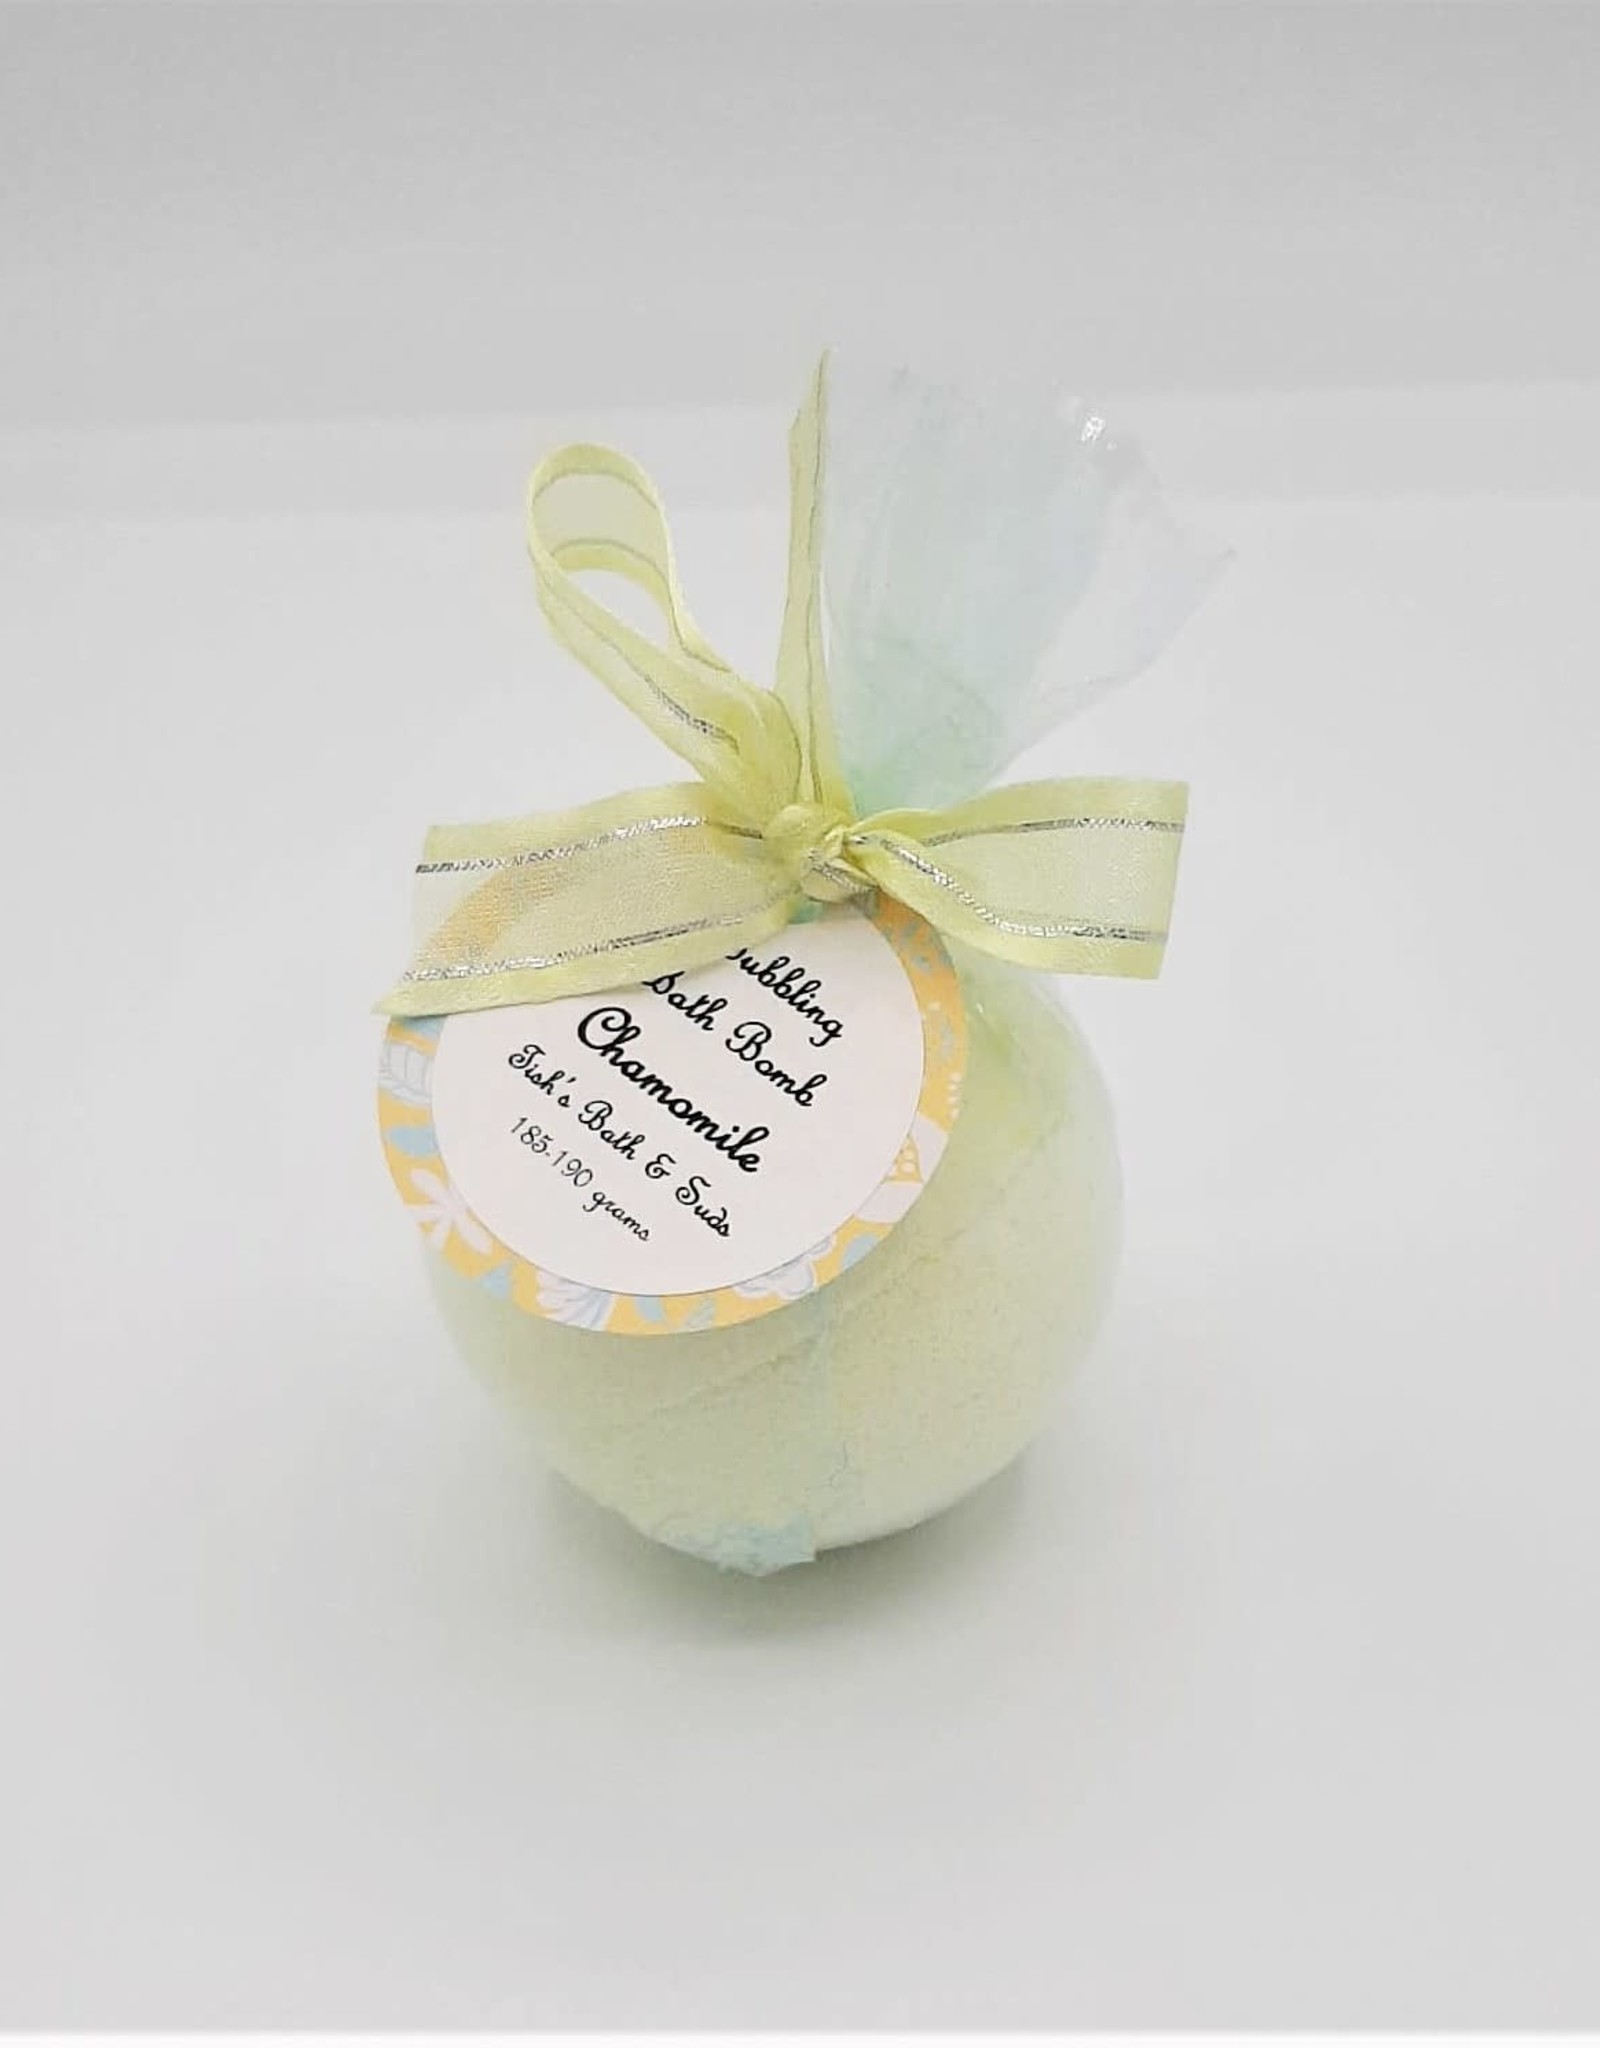 Tish's Bath & Suds Bubbling Bath Bomb - Multiple Scents